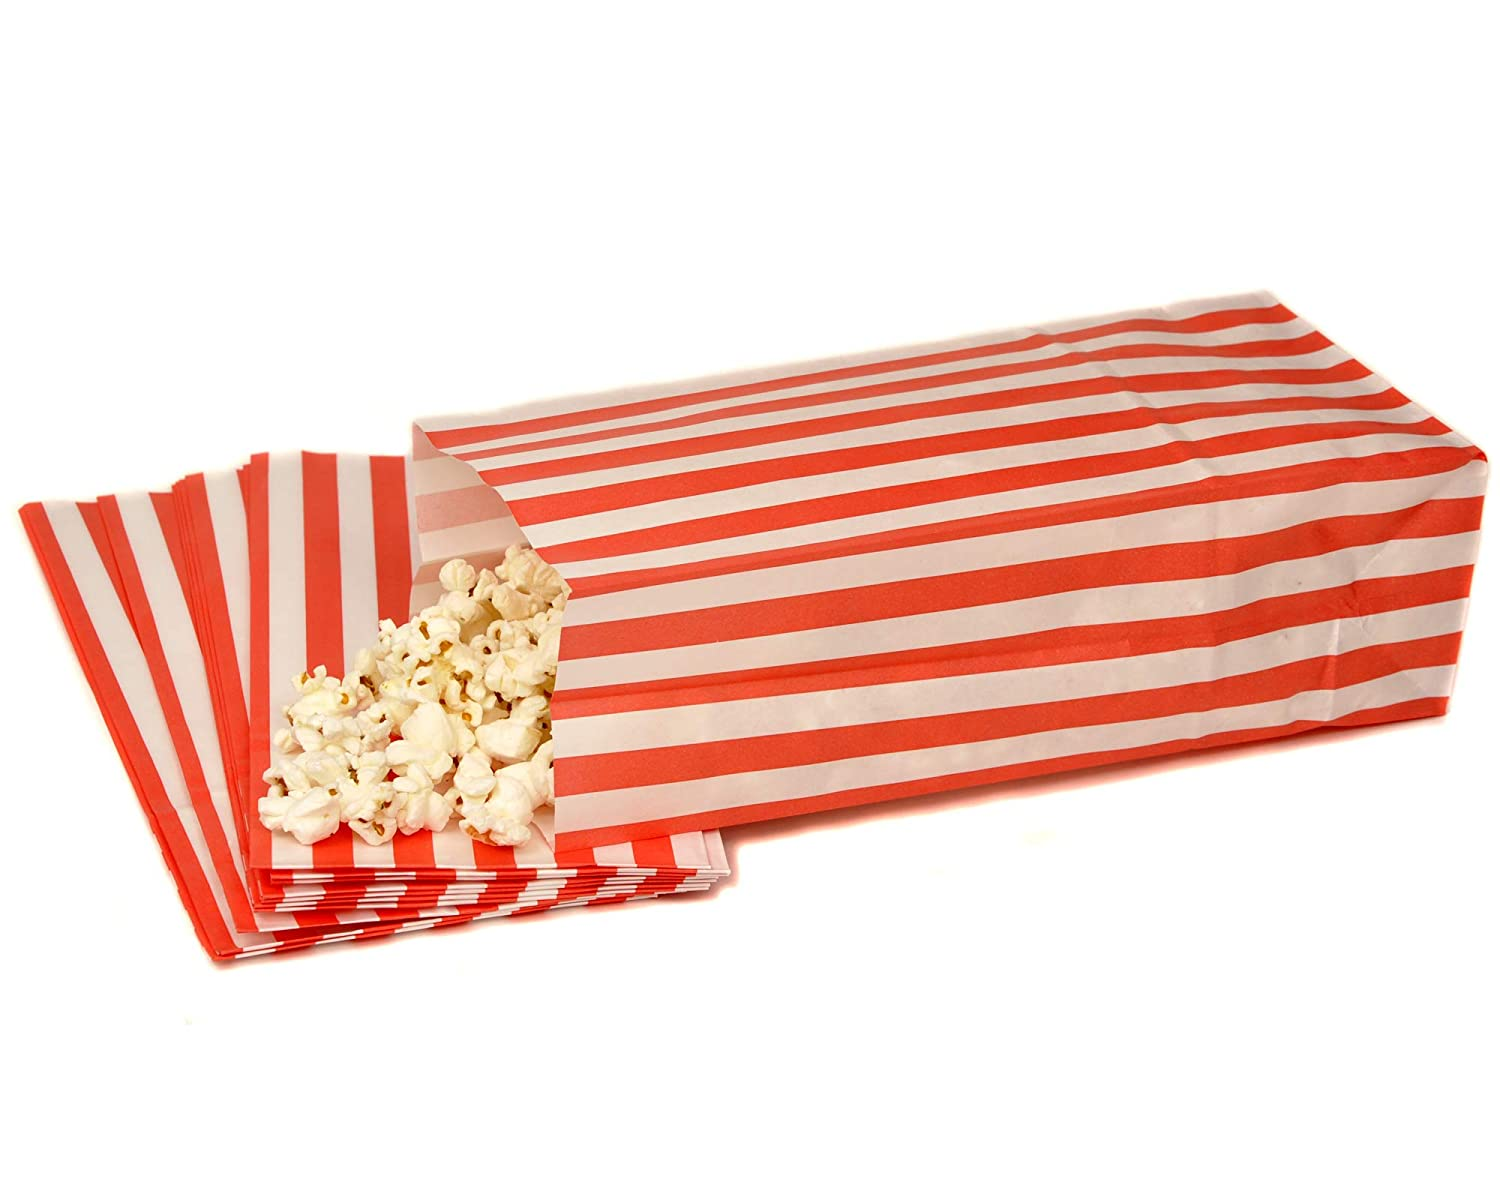 Bag It Plastics Red & White Pick and Mix Candy Stripe Paper Sweet / Popcorn Bags Recyclable and Biodegradable 4' x 9.5' x 3' / 110mm x 240mm x 75mm (Pack of 25)